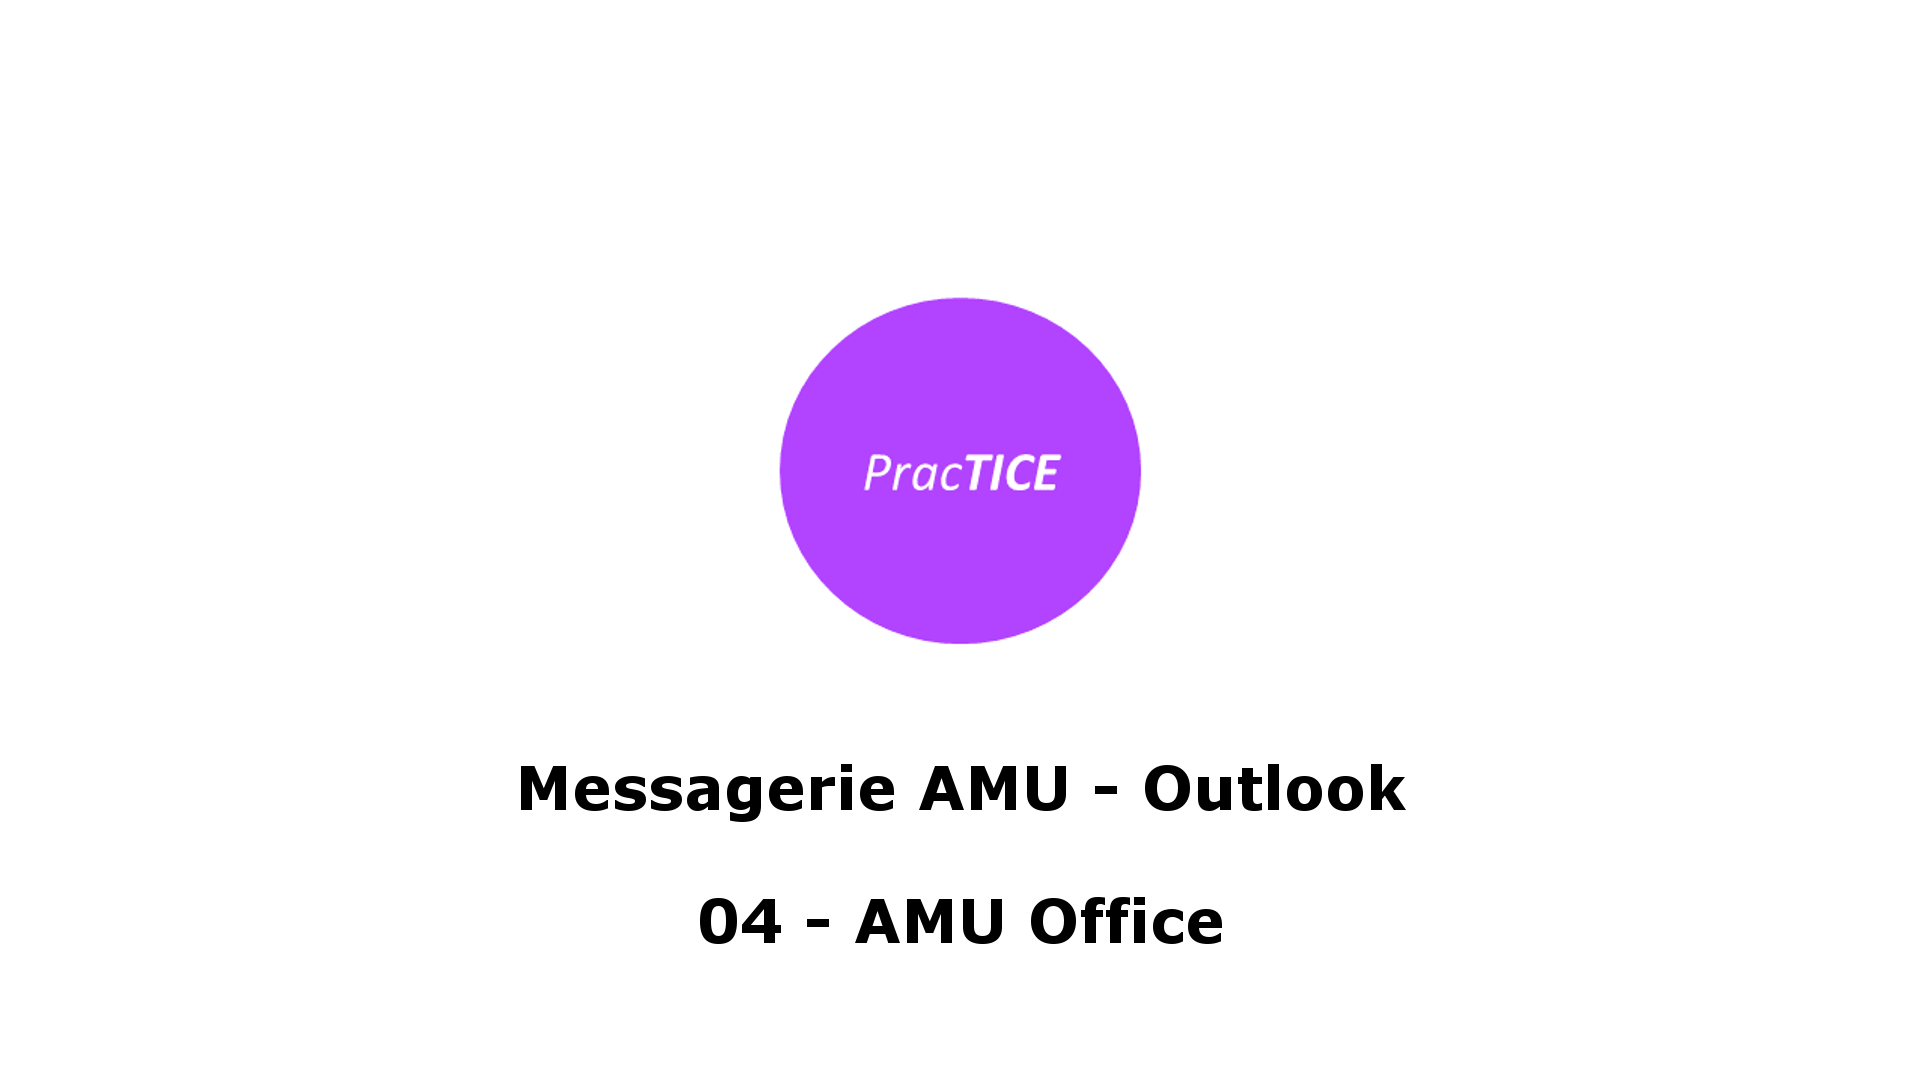 Messagerie AMU - Outlook - 04 - AMU Office